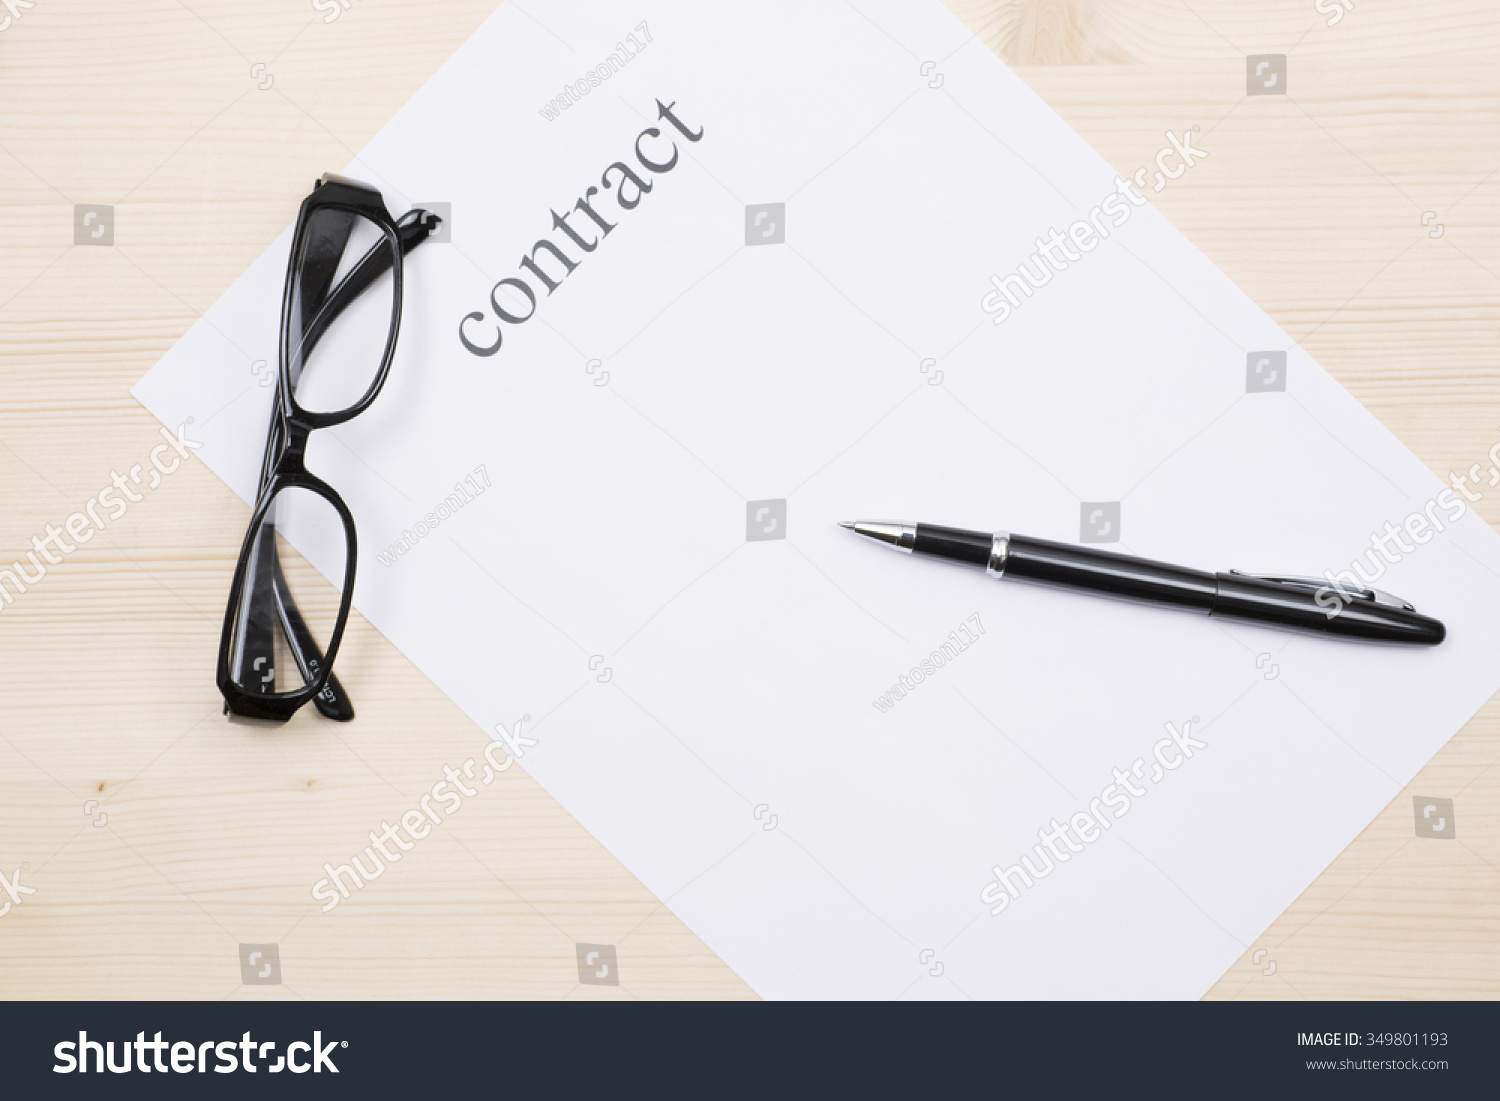 Blank Contract Photo 349801193 Shutterstock – Blank Contract